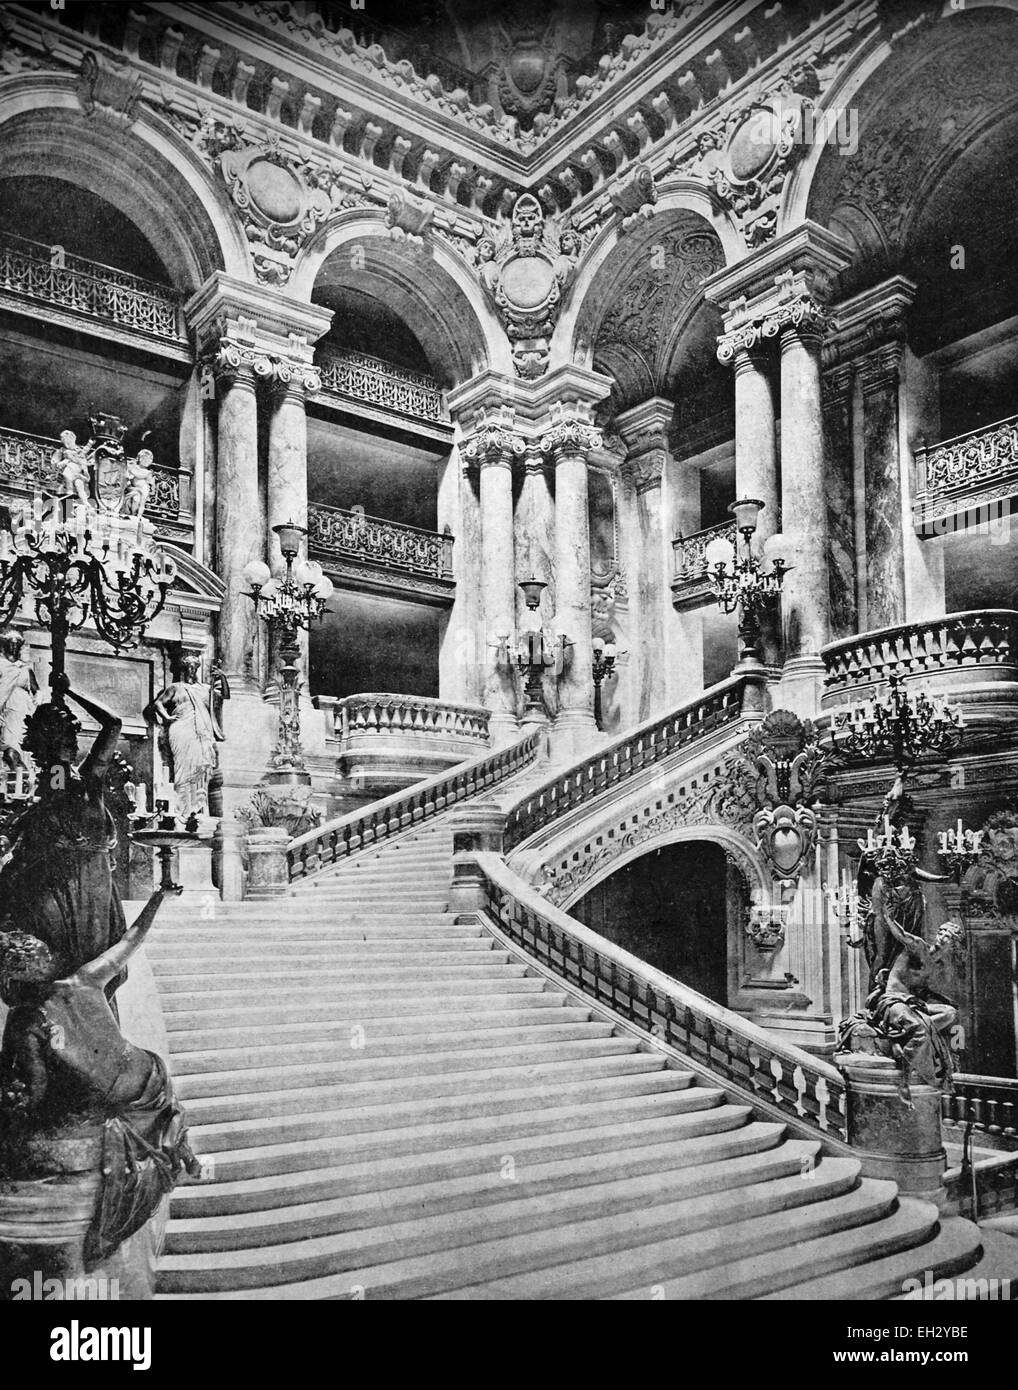 One of the first autotype photographs of the staircase of the Opera in Paris, France, circa 1880 - Stock Image